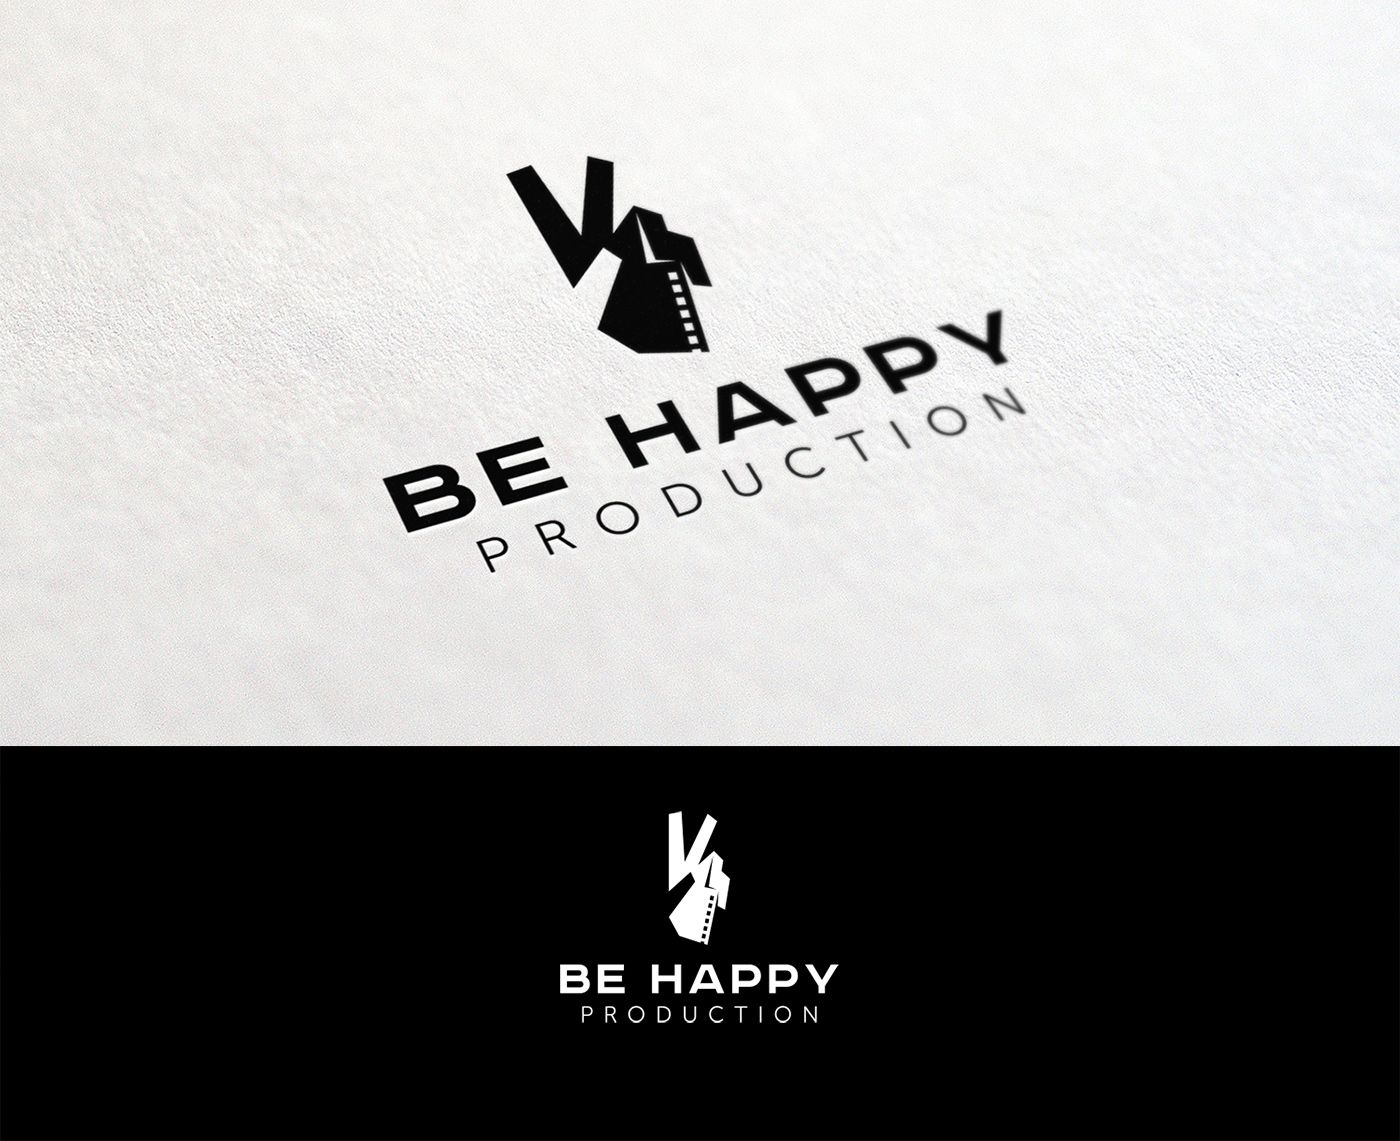 Логотип для Be Happy Production  - дизайнер mz777